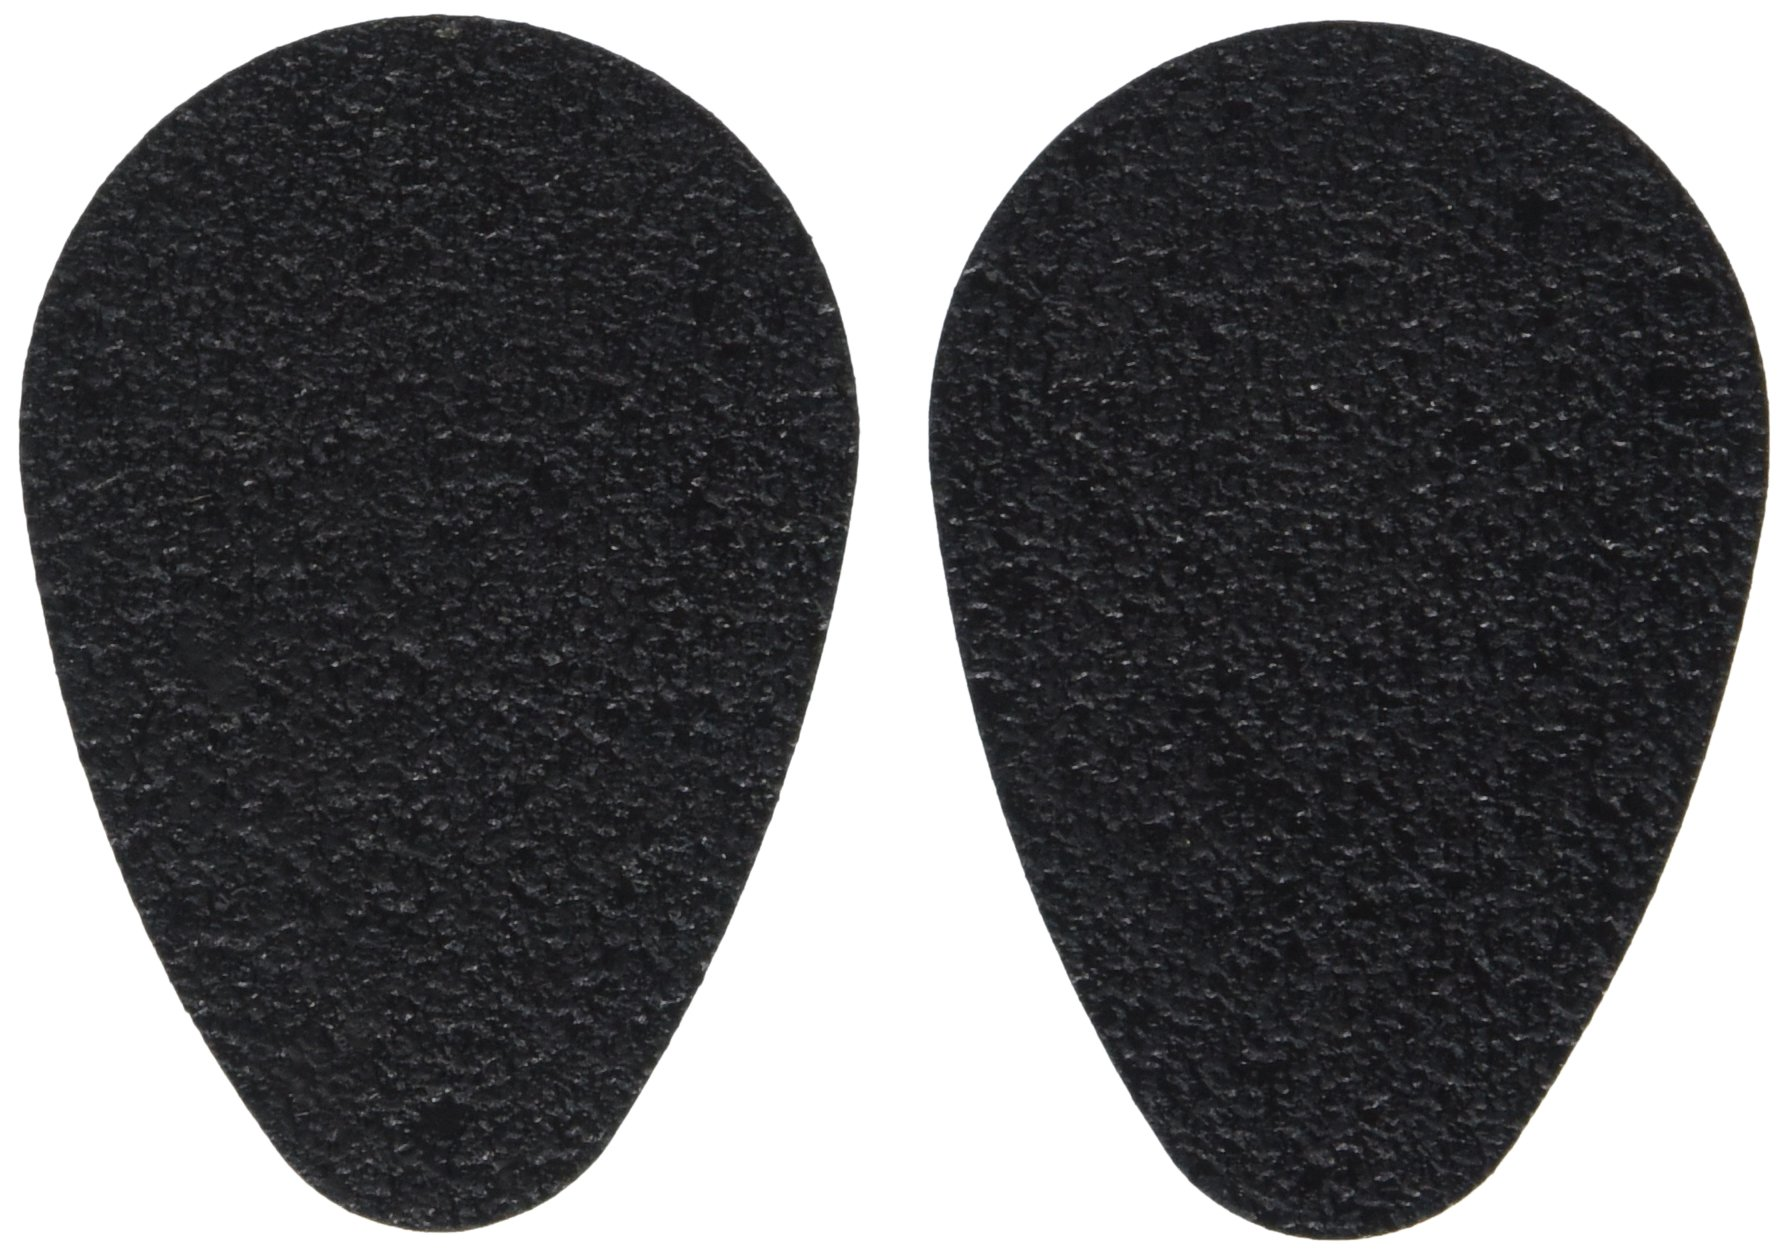 Safe Step Sole Pads - Are Your High Heels Too Slippery?